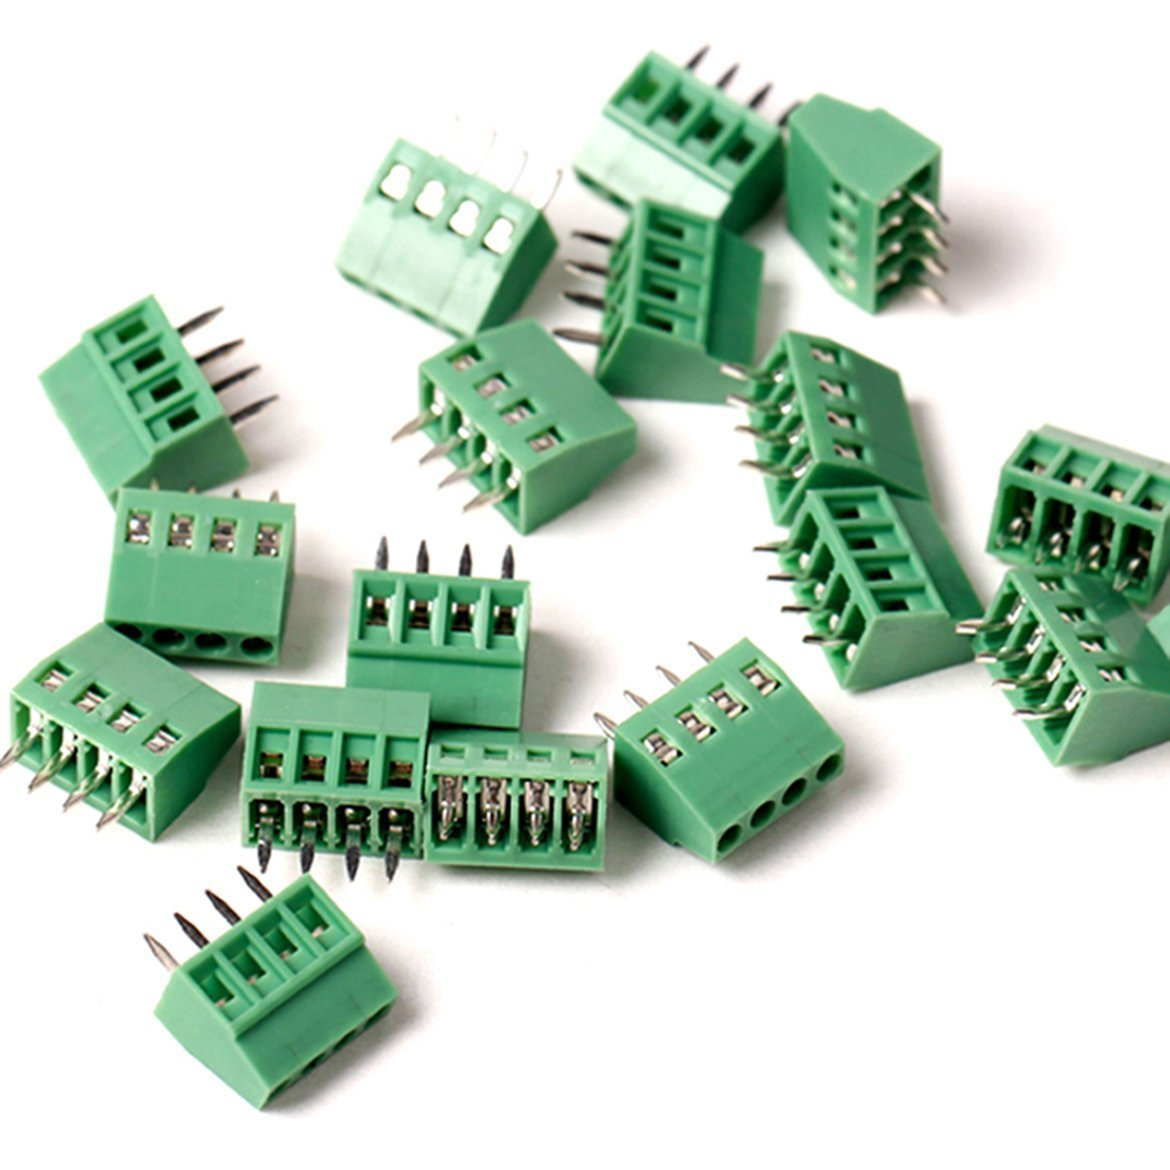 50pcs/lot E-Simpo 2.54mm PCB Screw Terminal Block, 2.54mm 150V6A CE Rohs UL (2.54mm 4P)